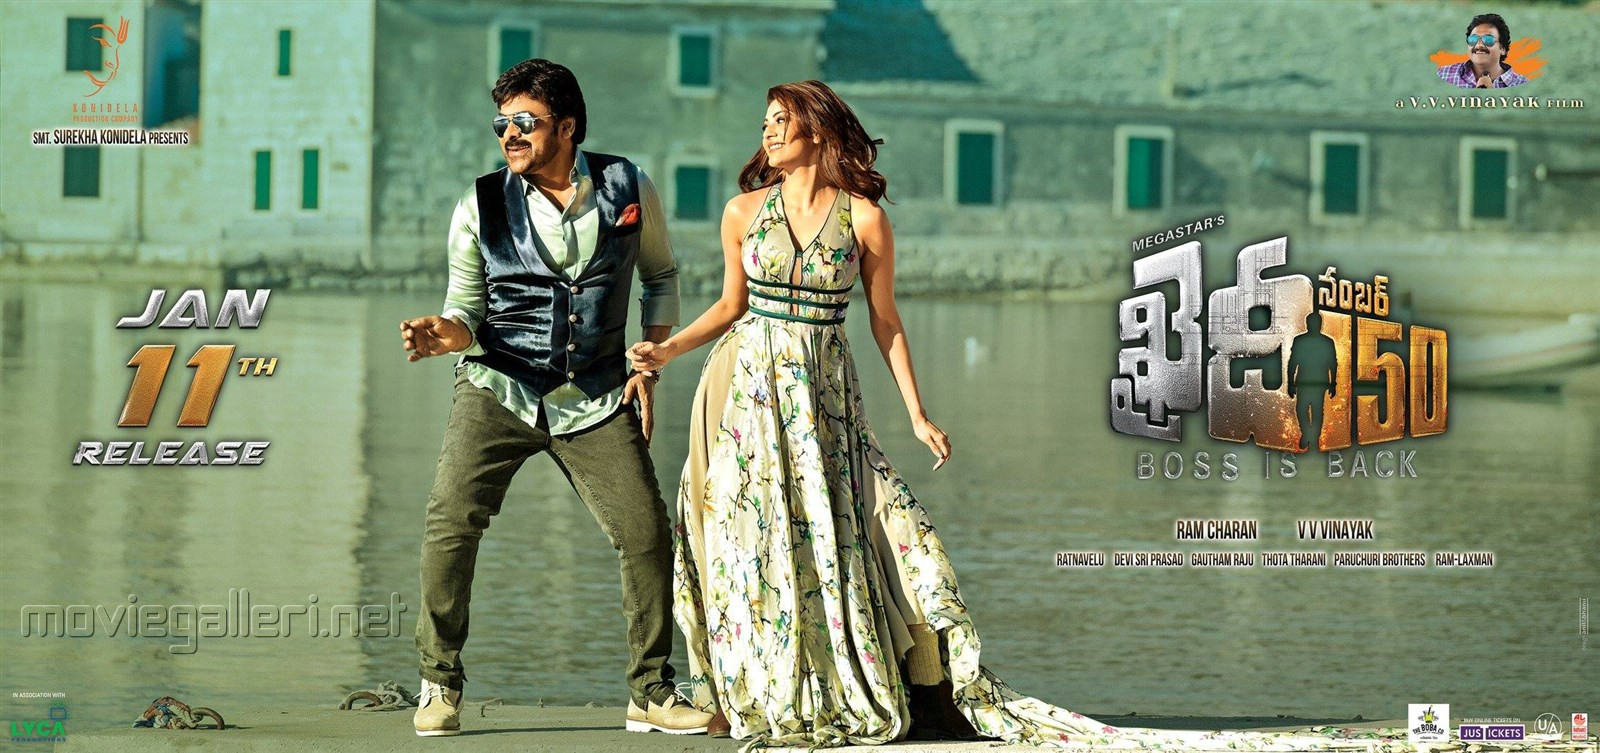 Chiranjeevi, Kajal Agarwal in Khaidi No 150 Movie Release Wallpapers